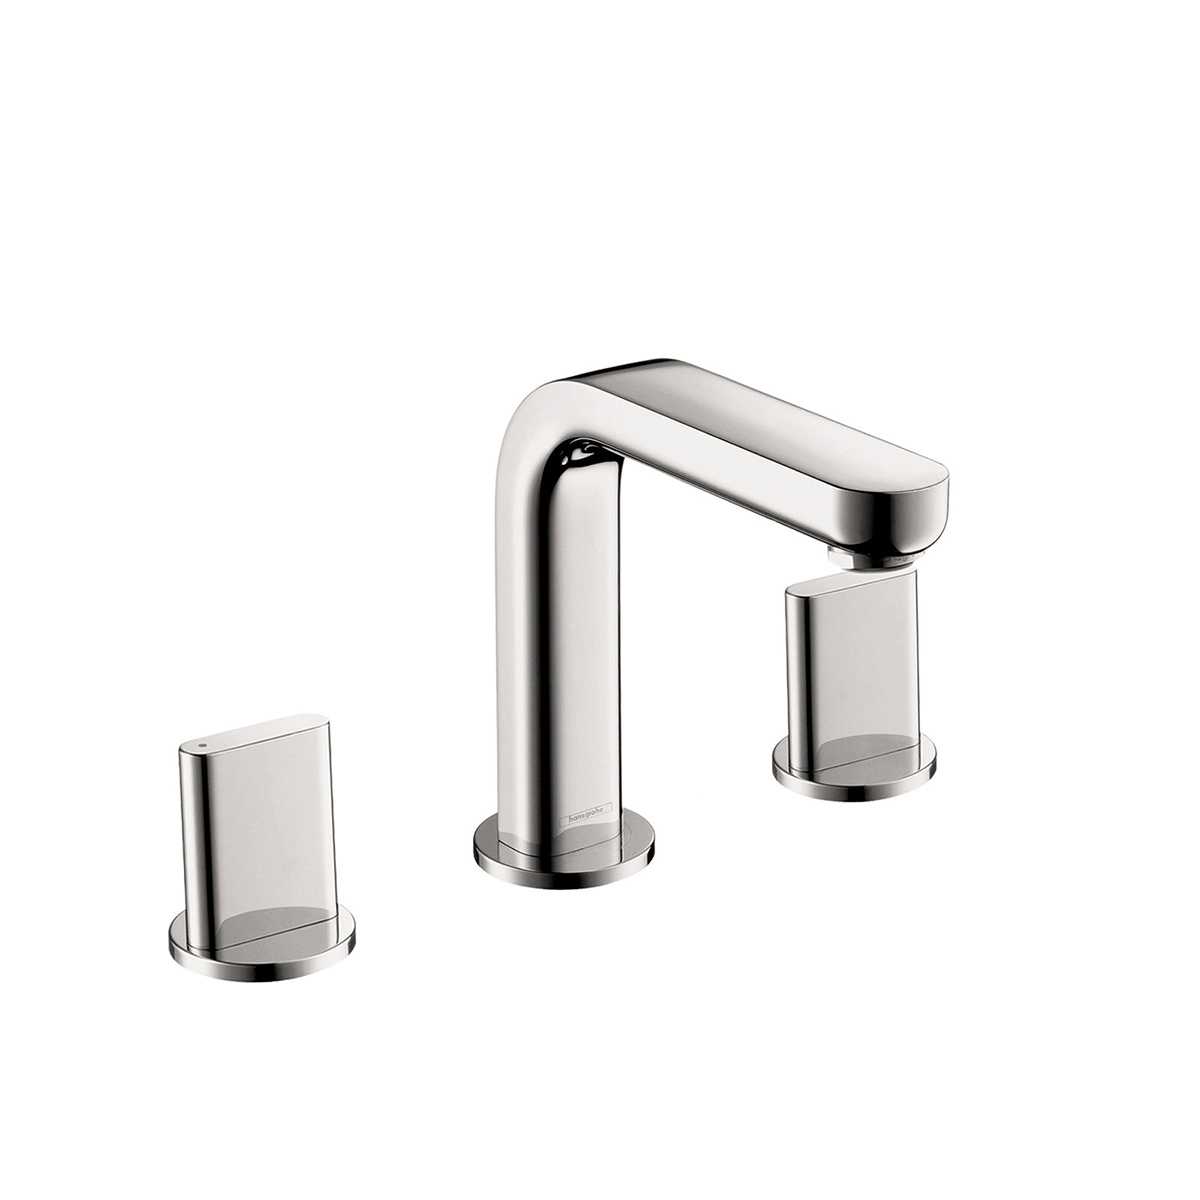 Bath4All - Hansgrohe 31063001 Chrome Metris S Bathroom Faucet ...